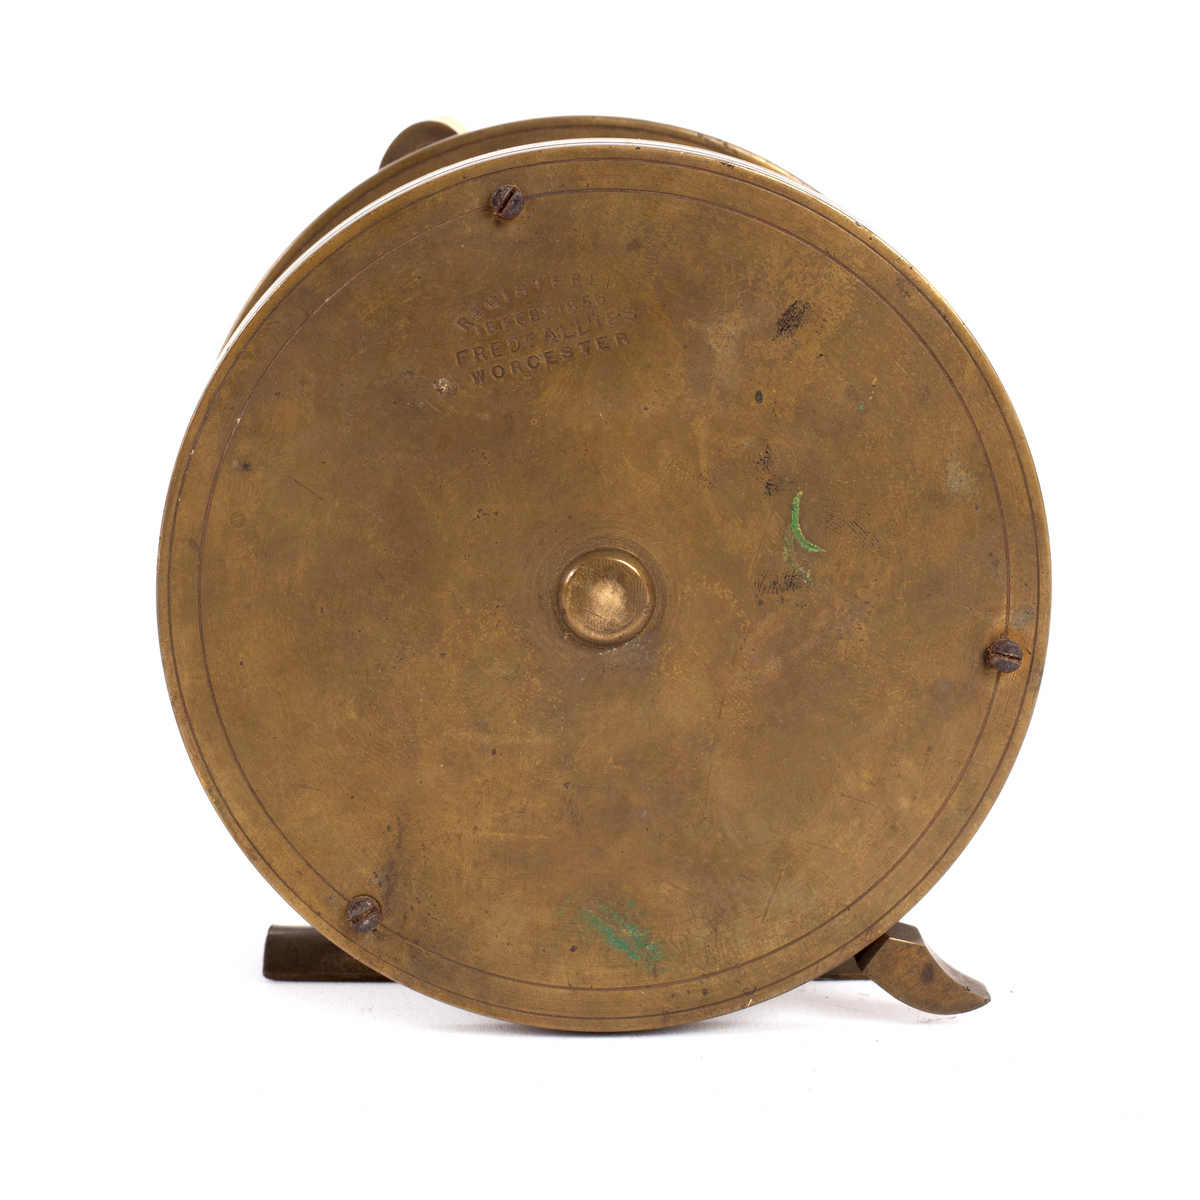 Lot 552 - A Victorian brass fishing reel marked Registered 18 Feby 1856, Fred'k Allies, Worcester,